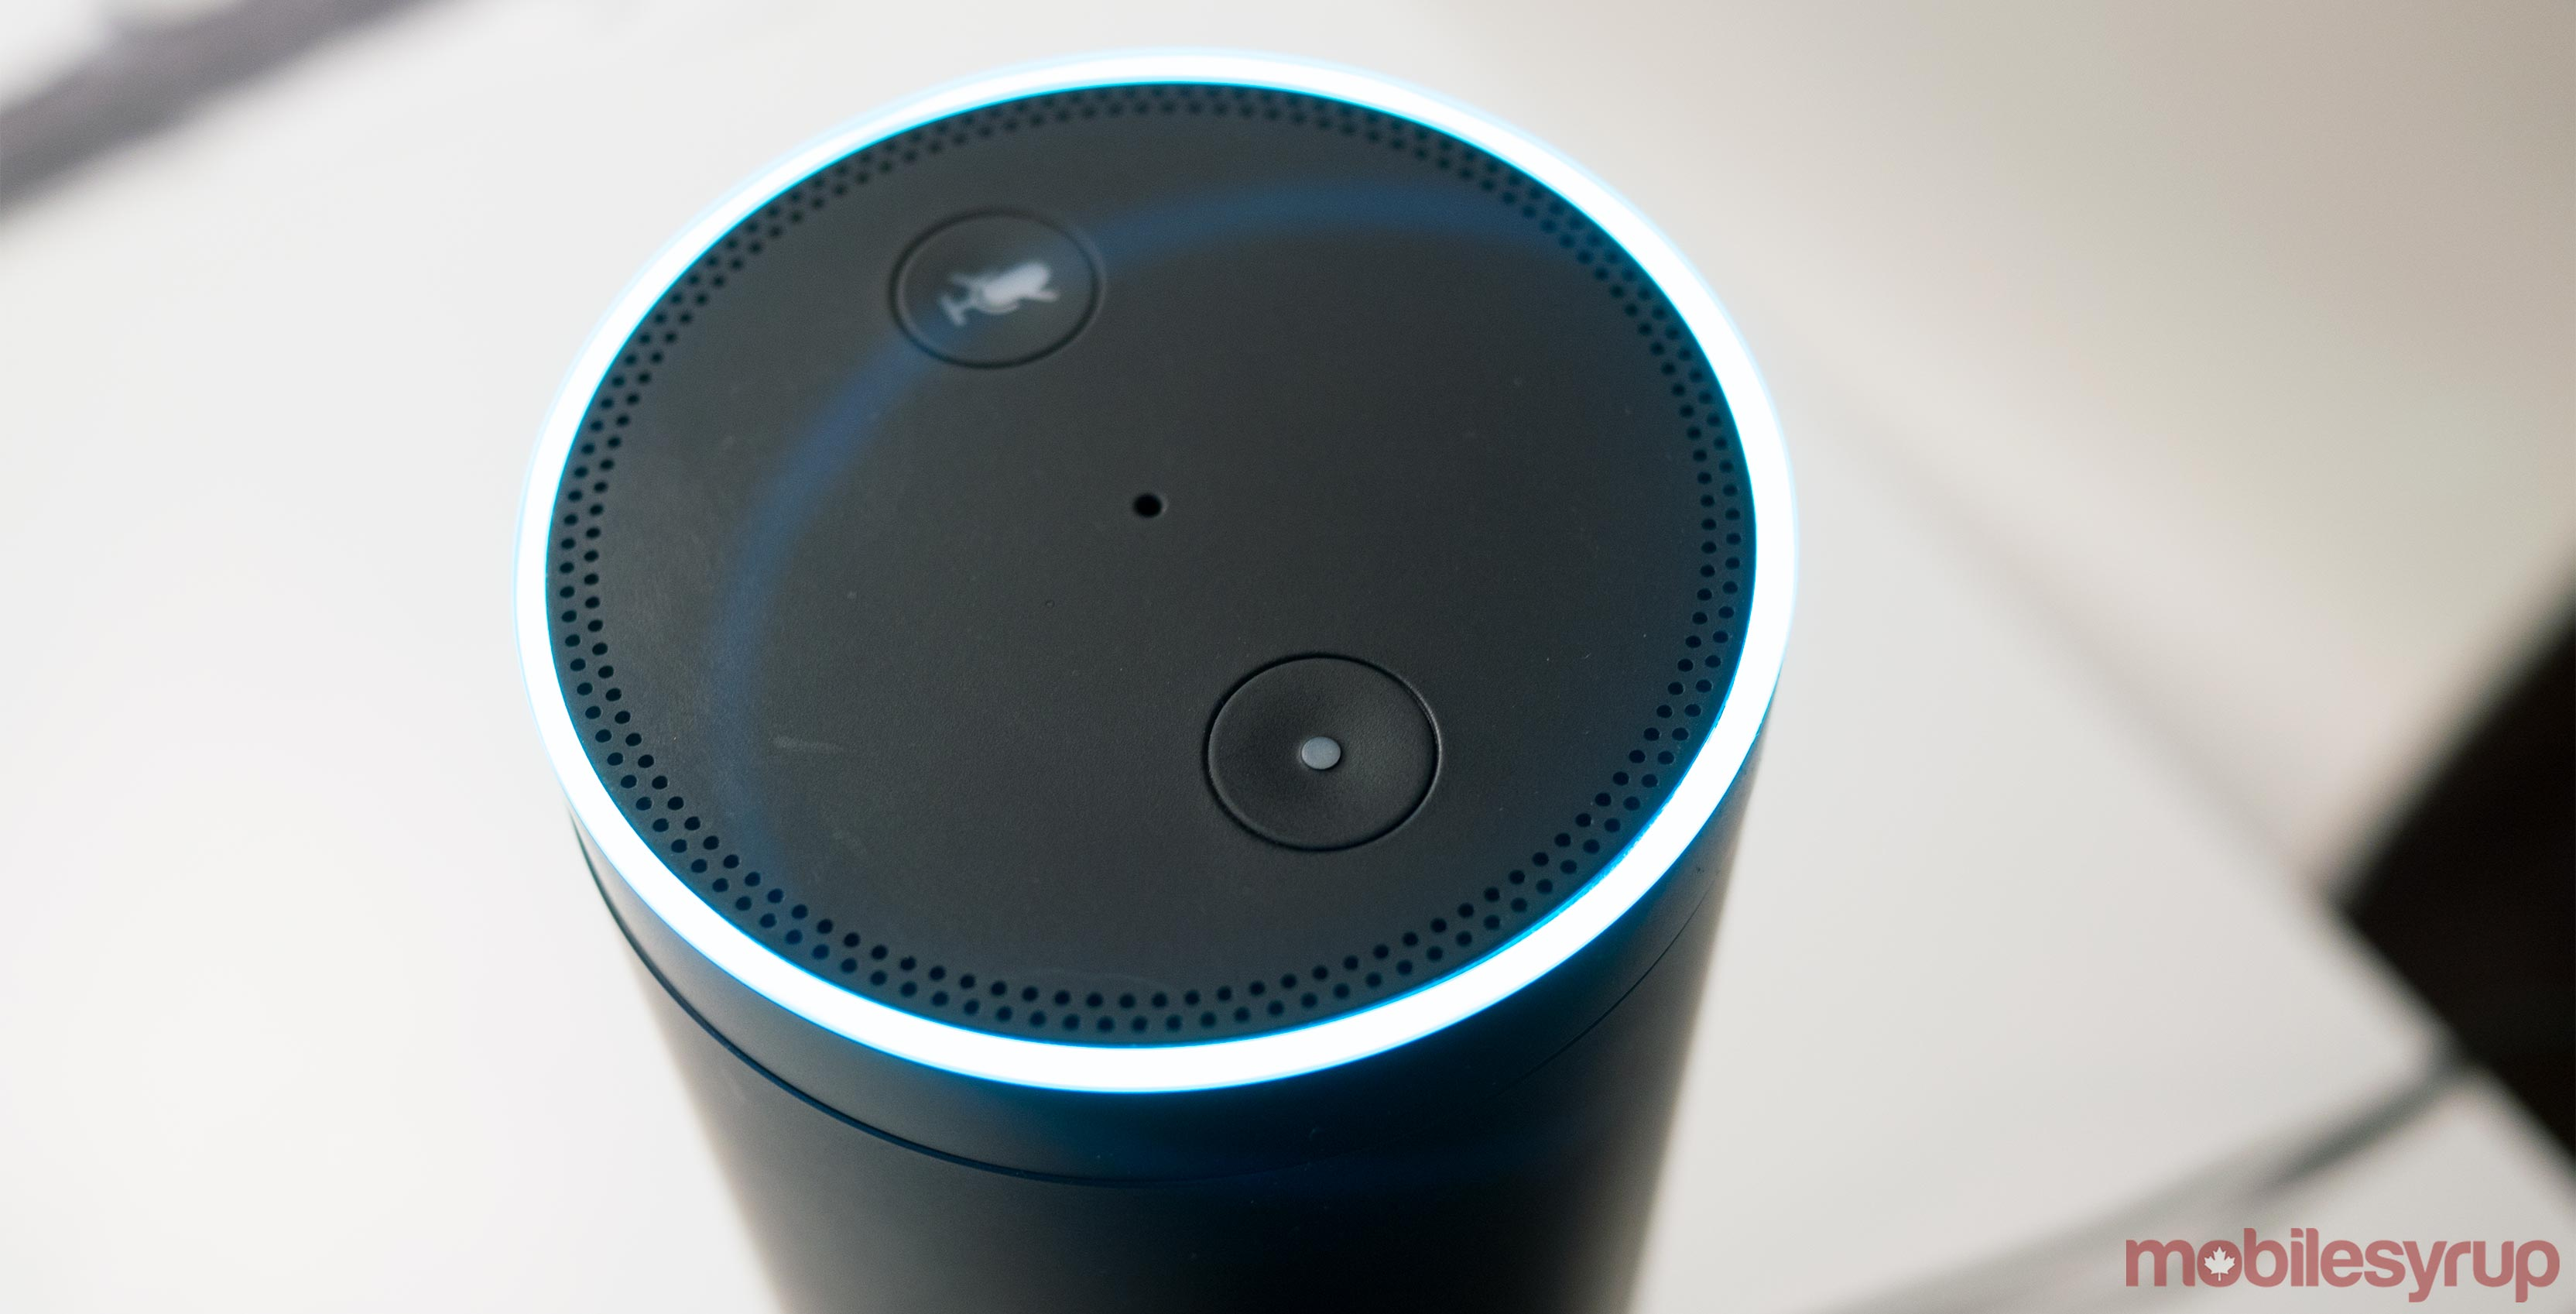 Random, terrifying laughter from Amazon's Alexa creeps out its users